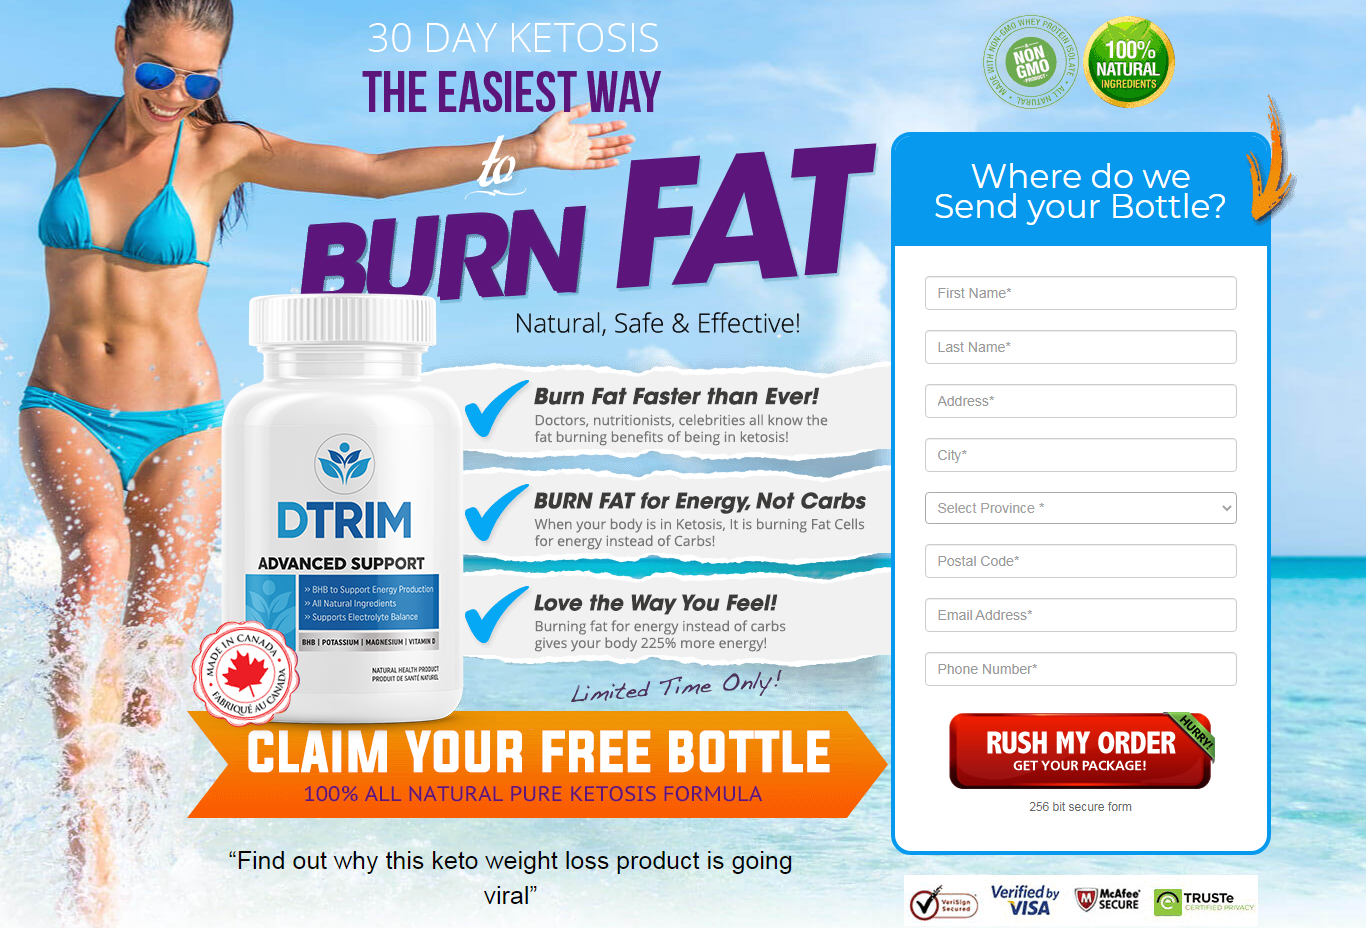 DTrim Keto Advanced Support [DTrim Keto] Does Its Really Works?